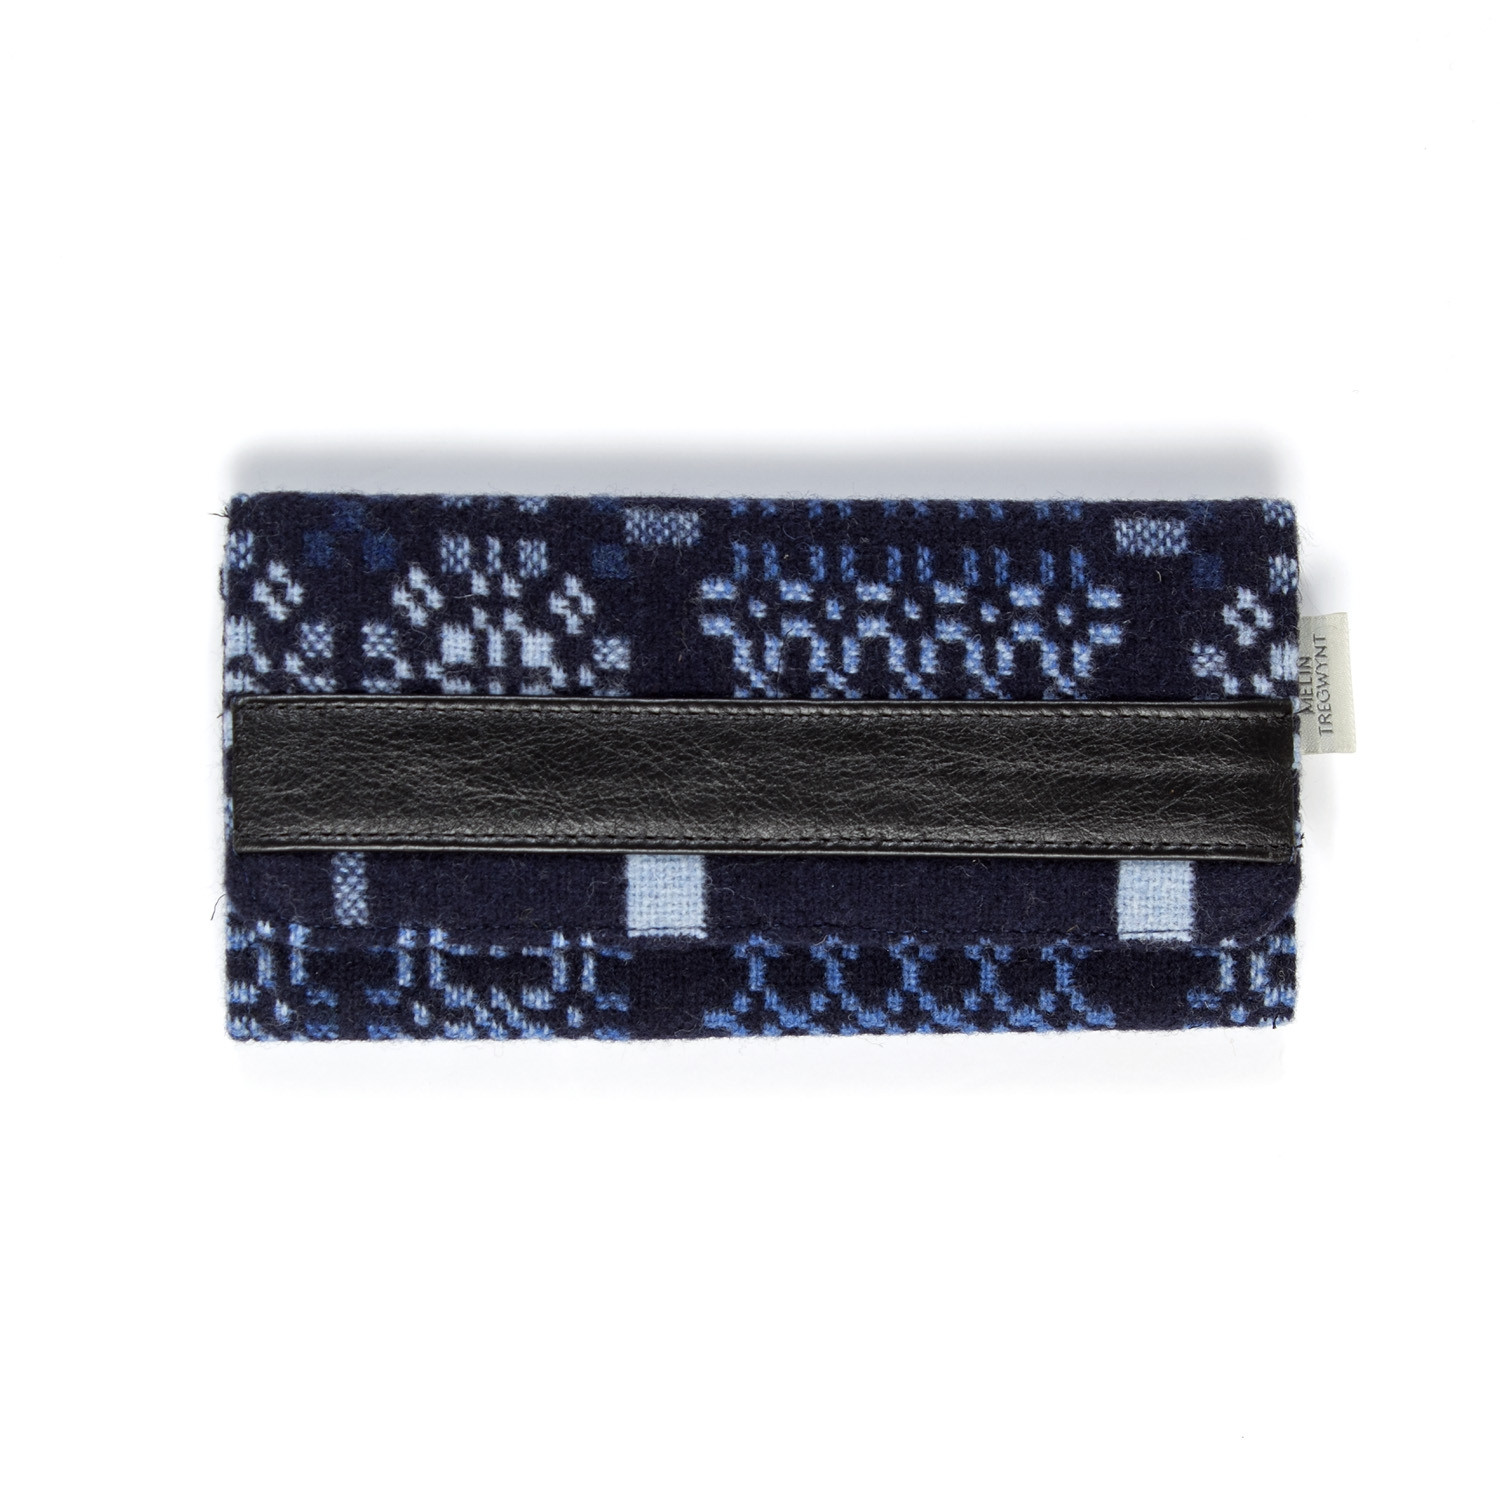 Knot garden indigo ladies wallet